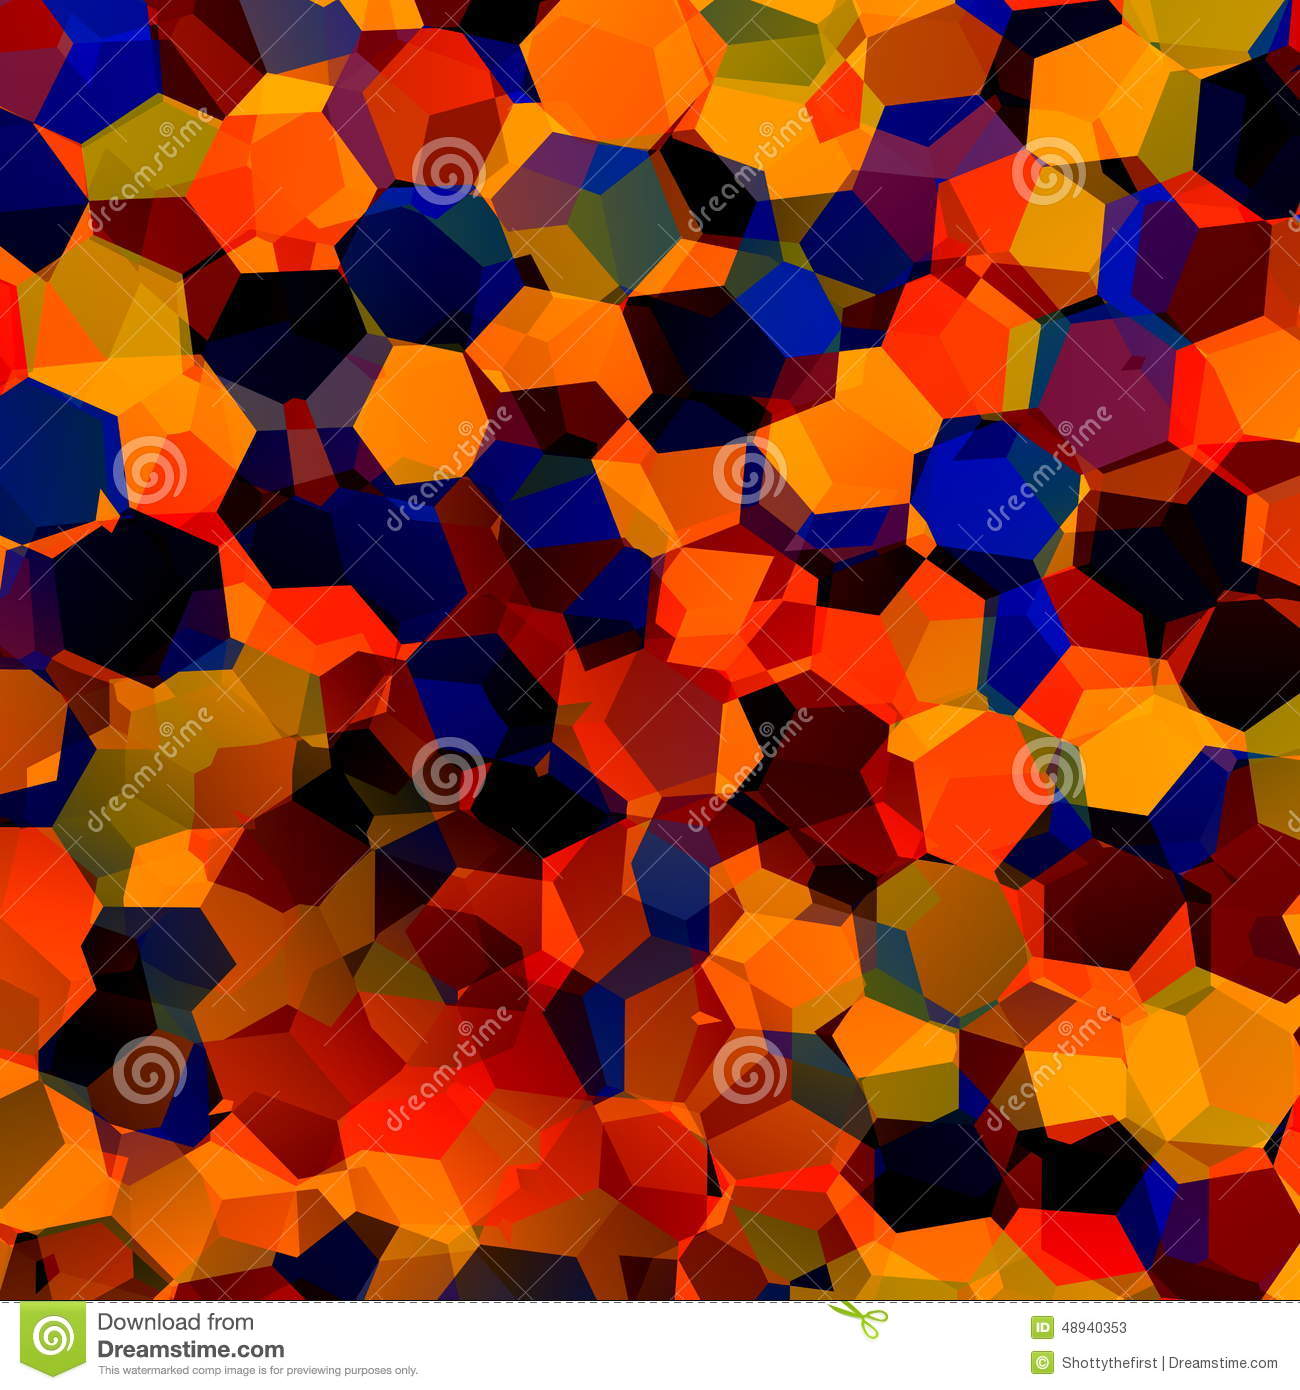 Abstract Colorful Chaotic Geometric Background. Generative Art Red ...